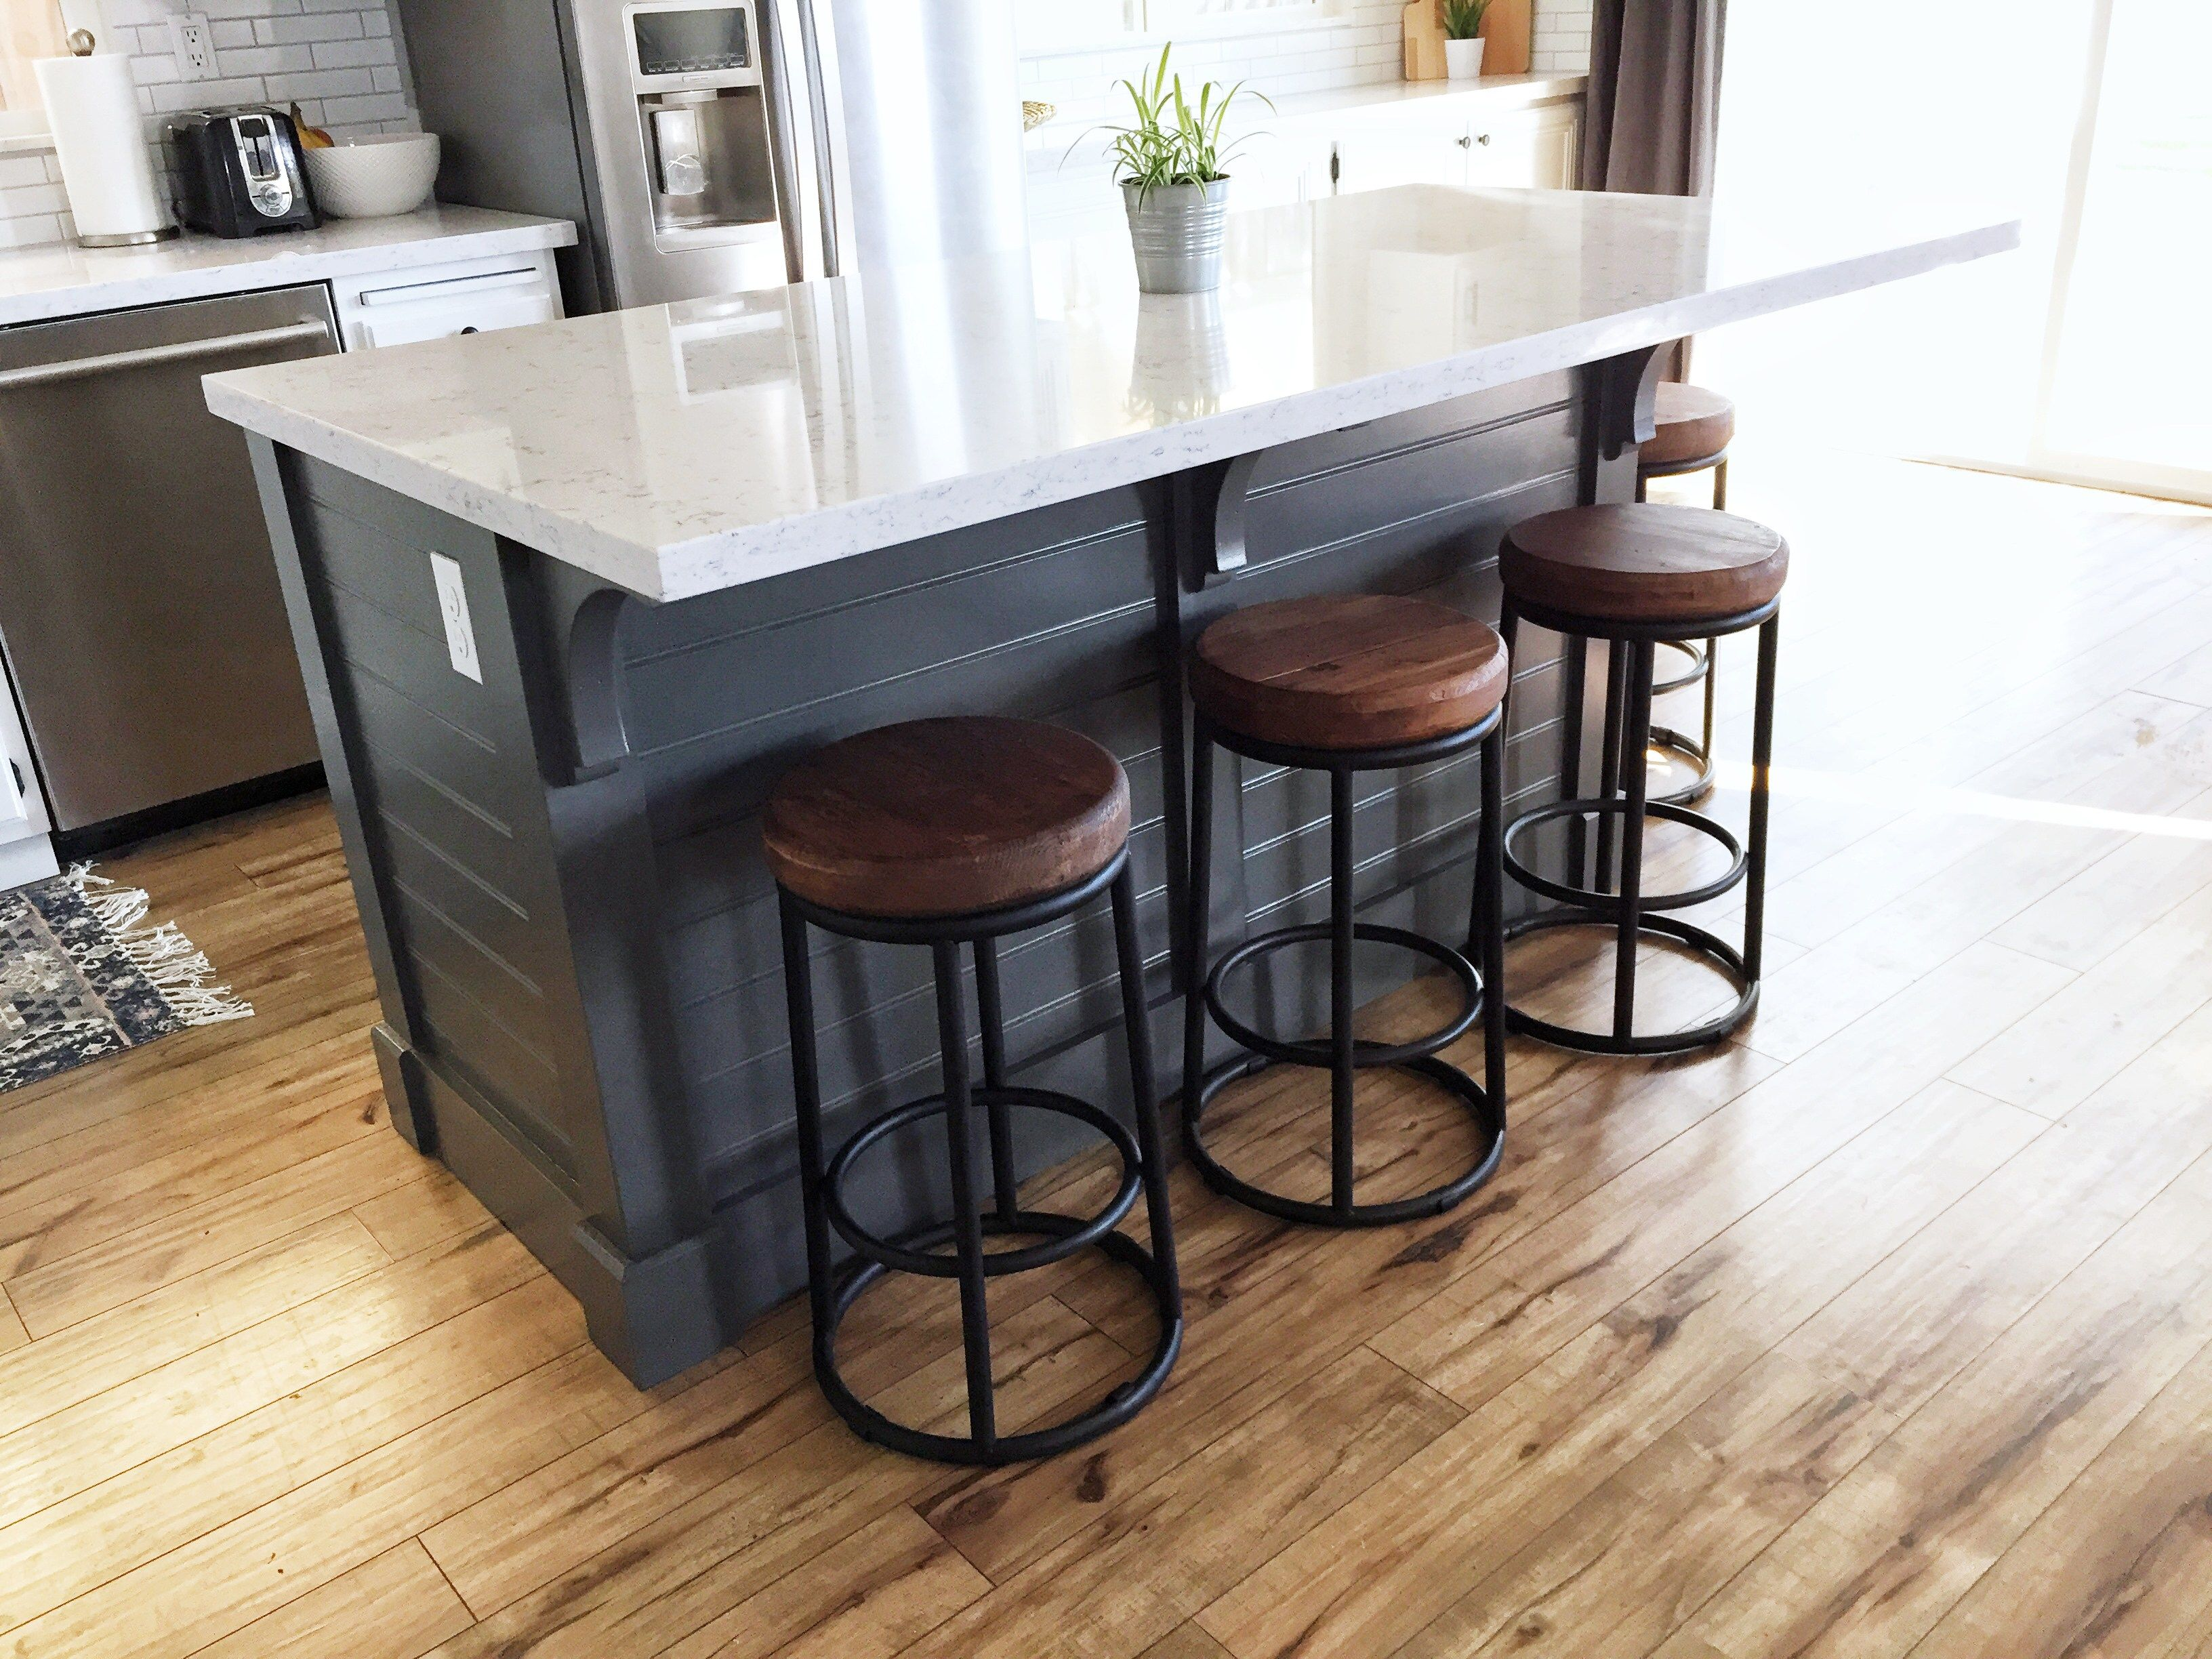 Kitchen Island Make It Yourself Save Big Home Pinterest - How to build your own kitchen island